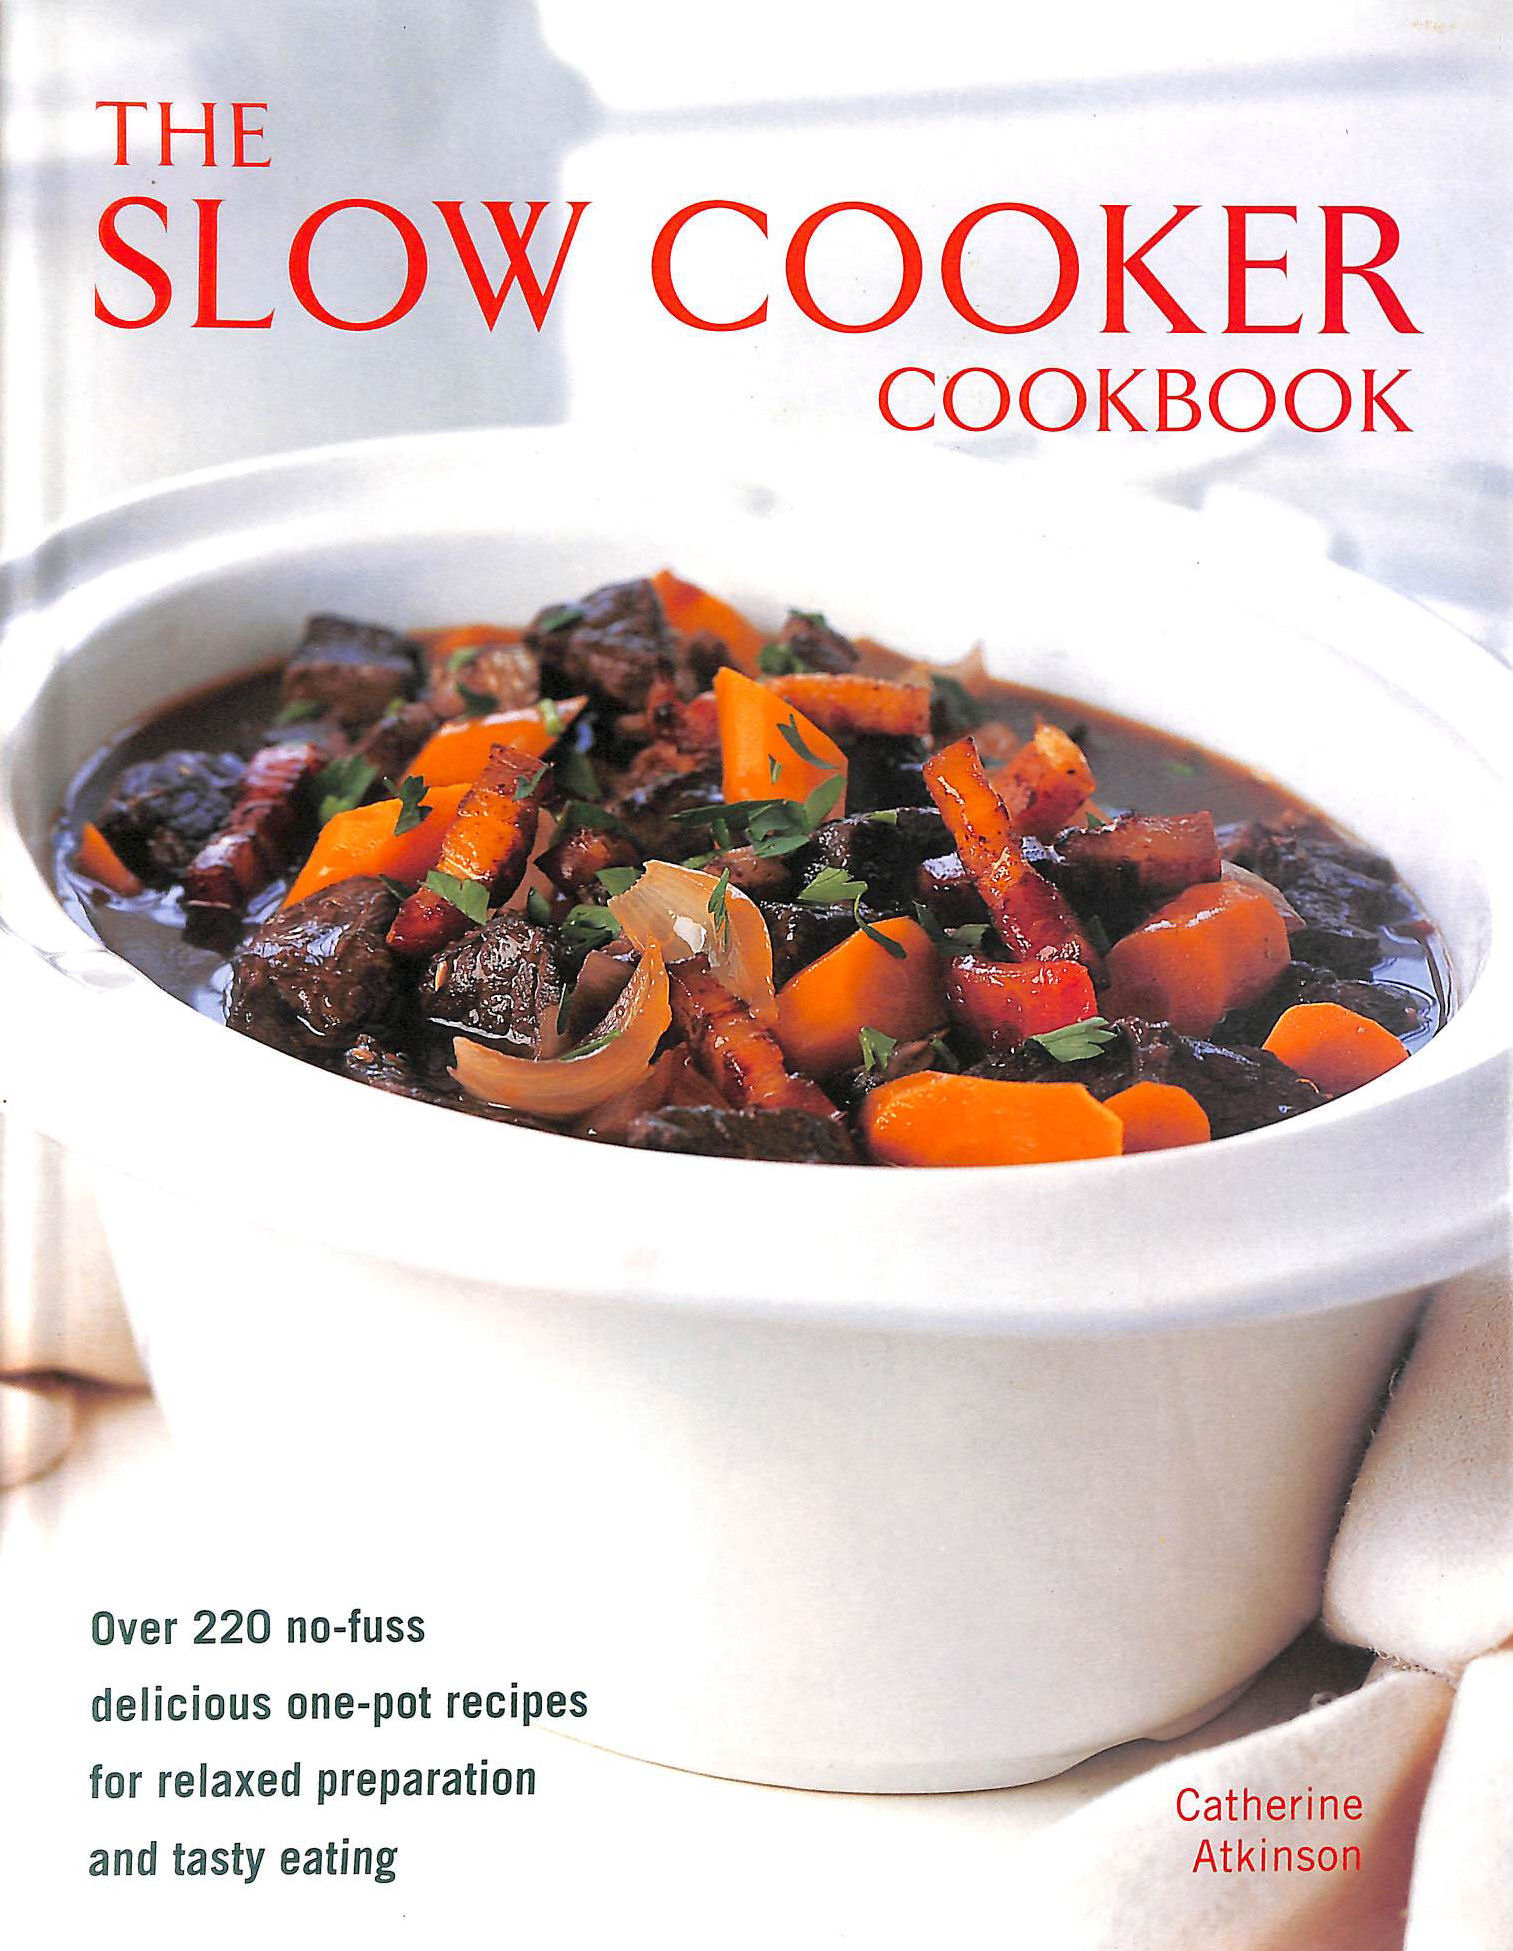 Image for Slow Cooker Cookbook: Over 220 No-fuss Delicious One-pot Recipes for Relaxed Preparation